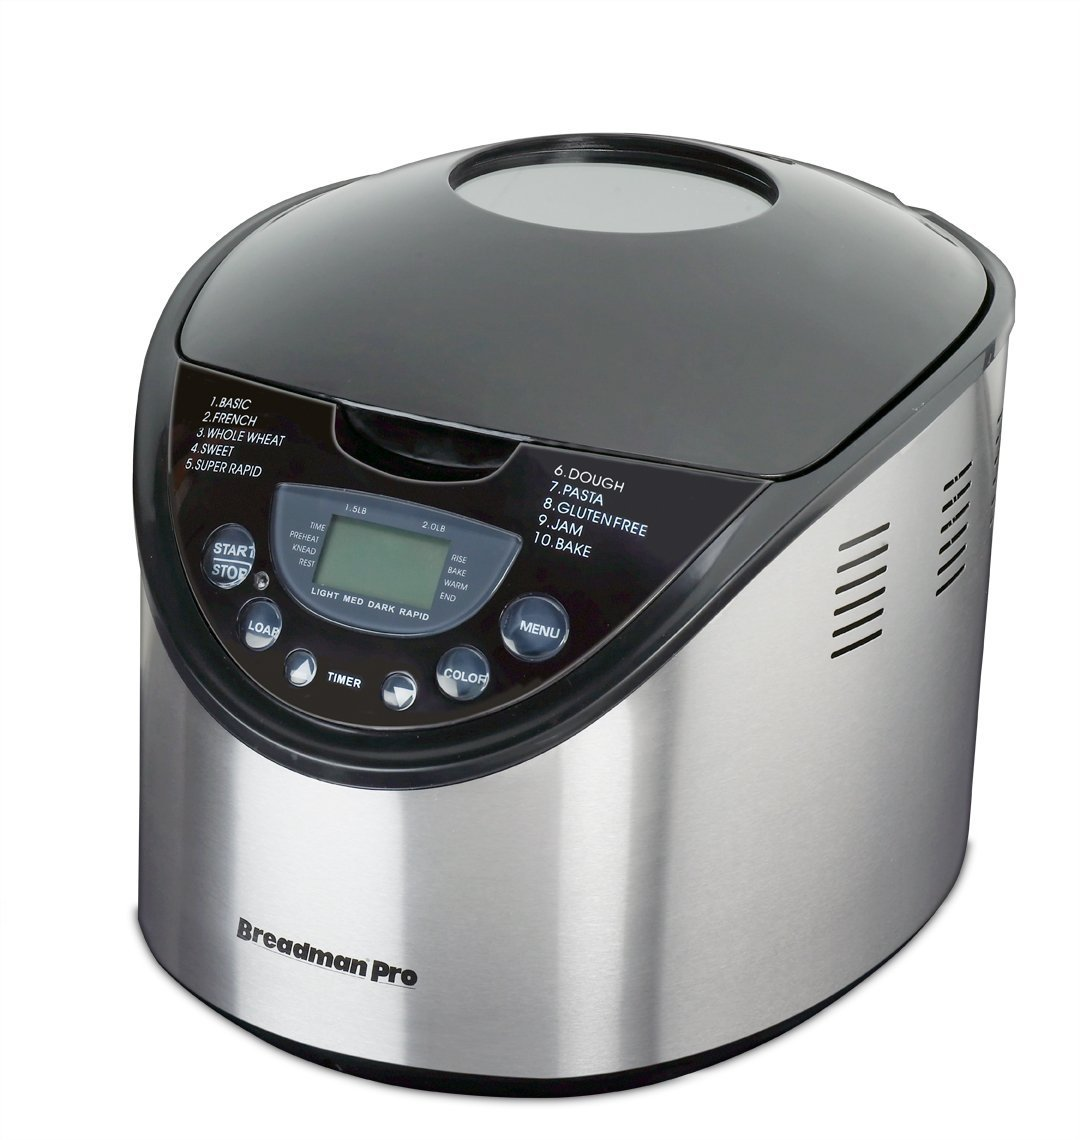 Breadman TR875 2-Pound Breadmaker, Stainless Steel Black & Decker